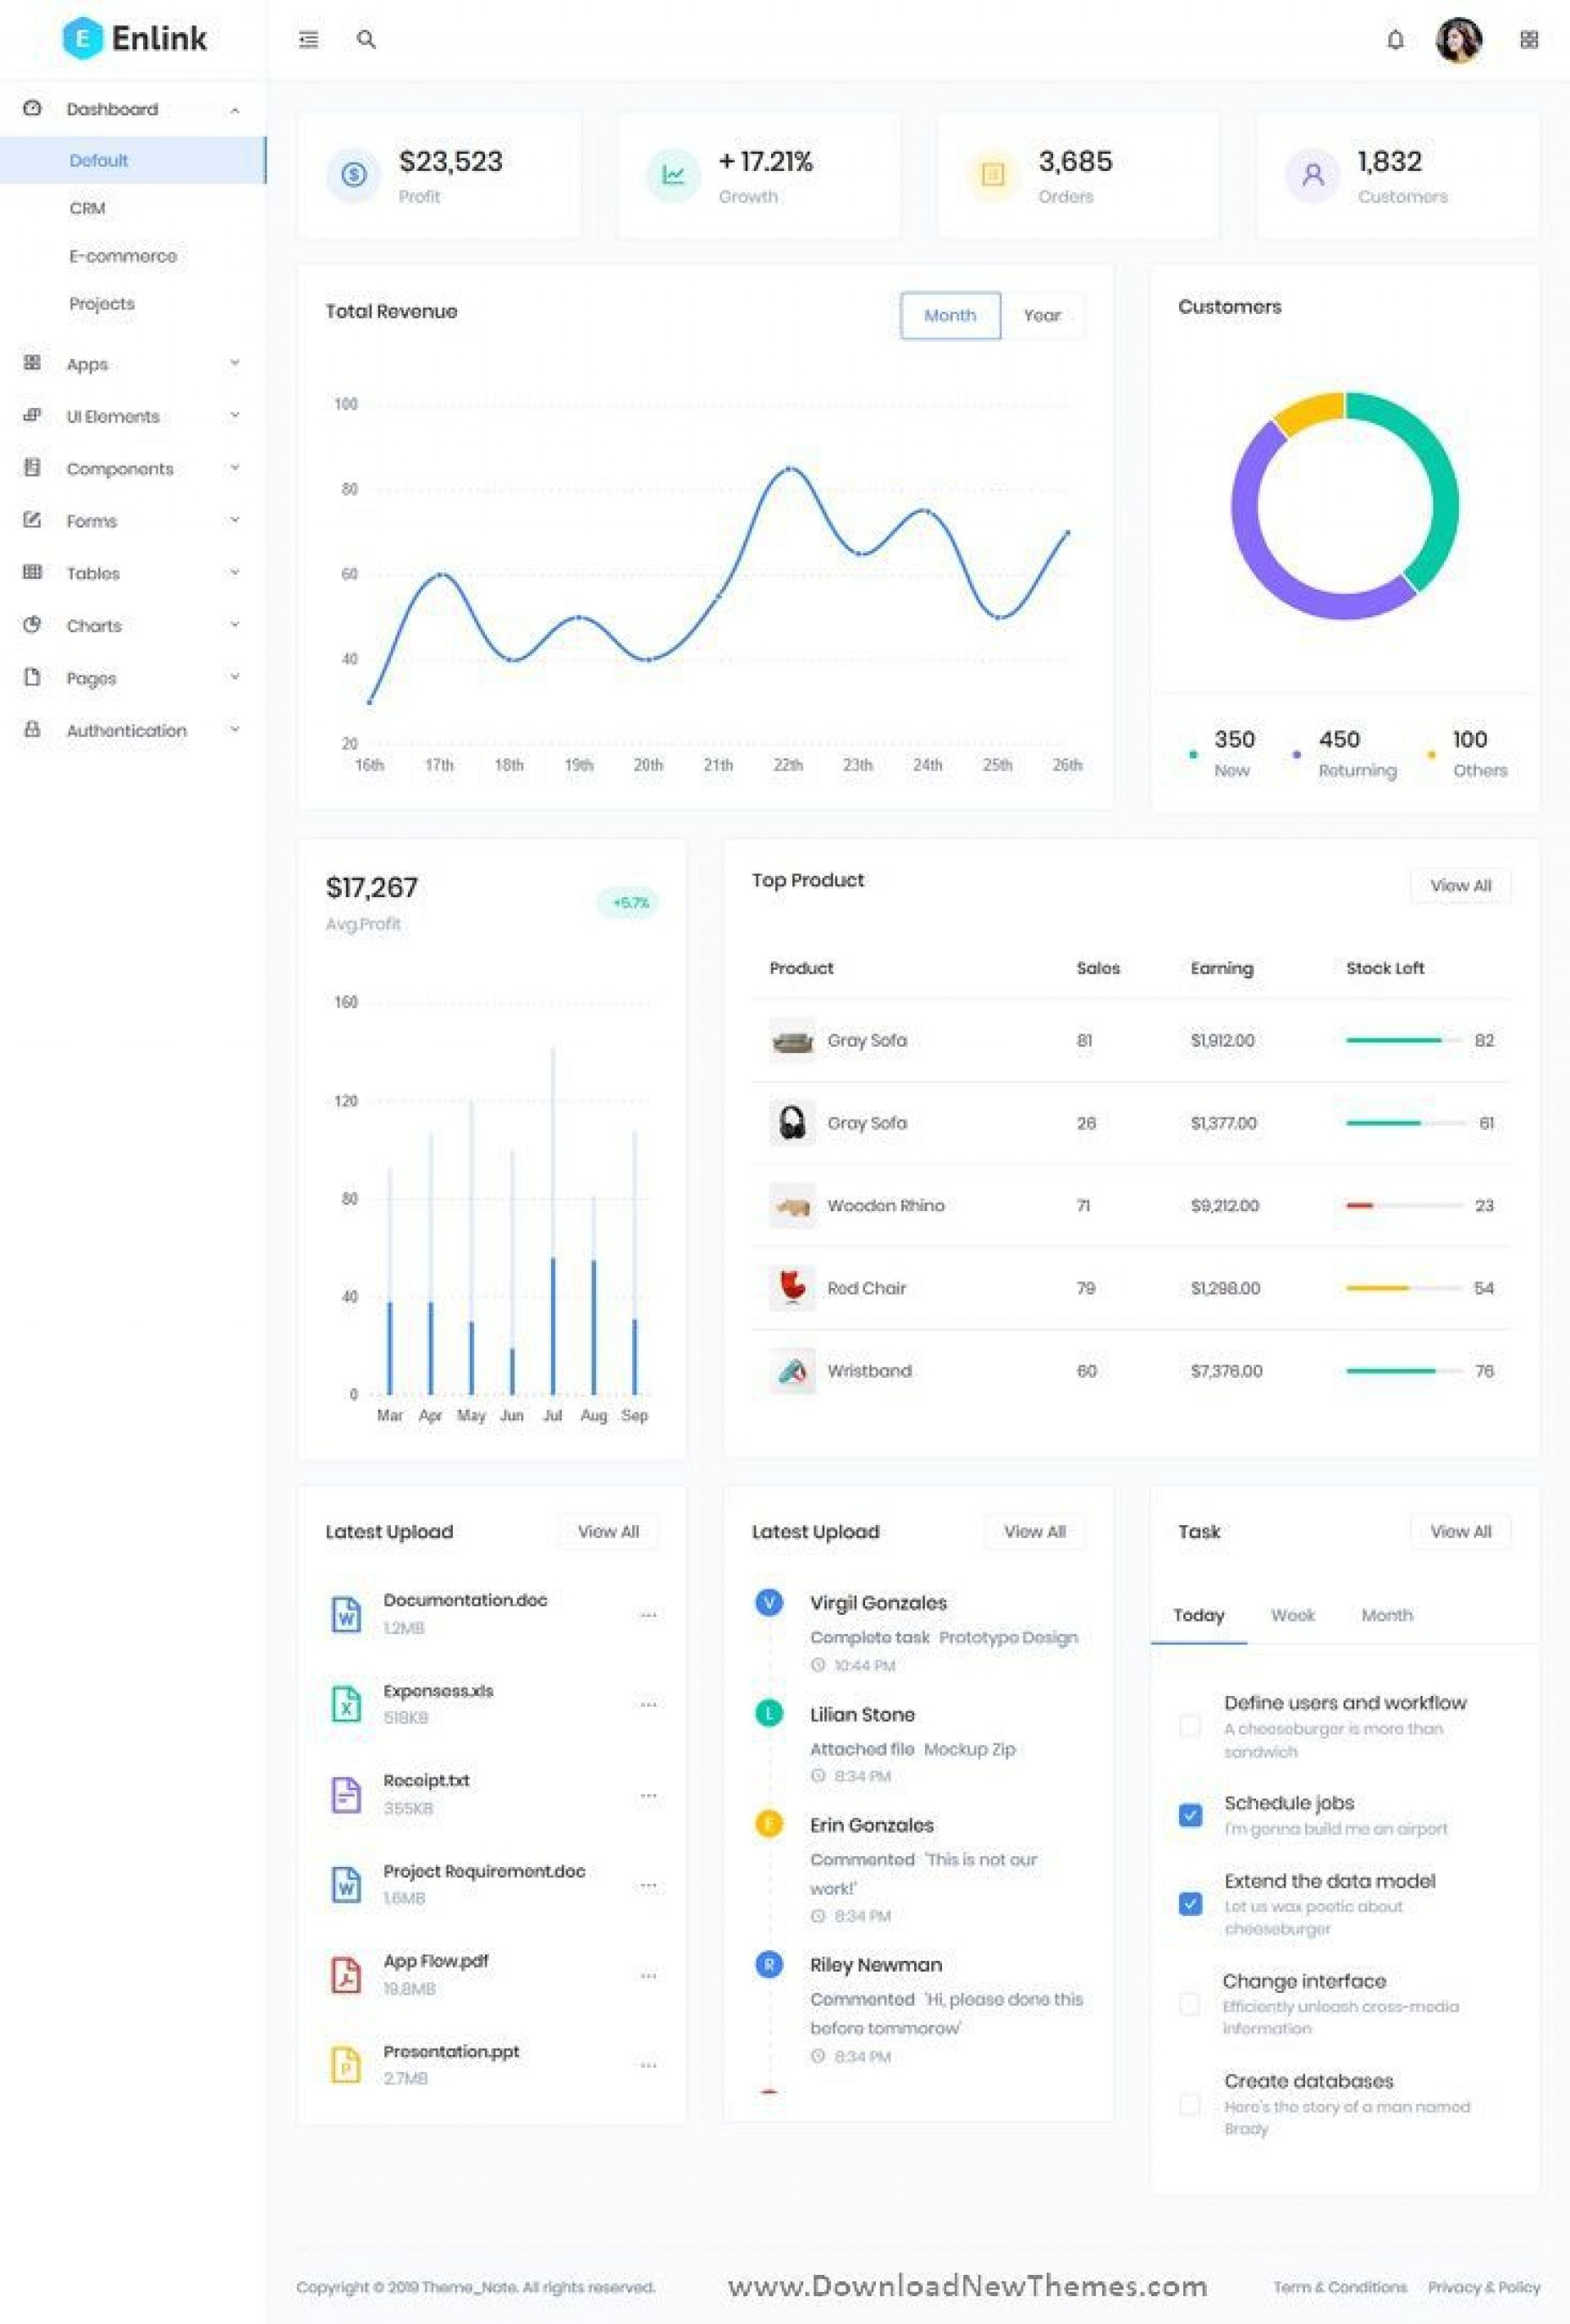 002 Awful Project Management Bootstrap Template Free Download High Resolution 1920